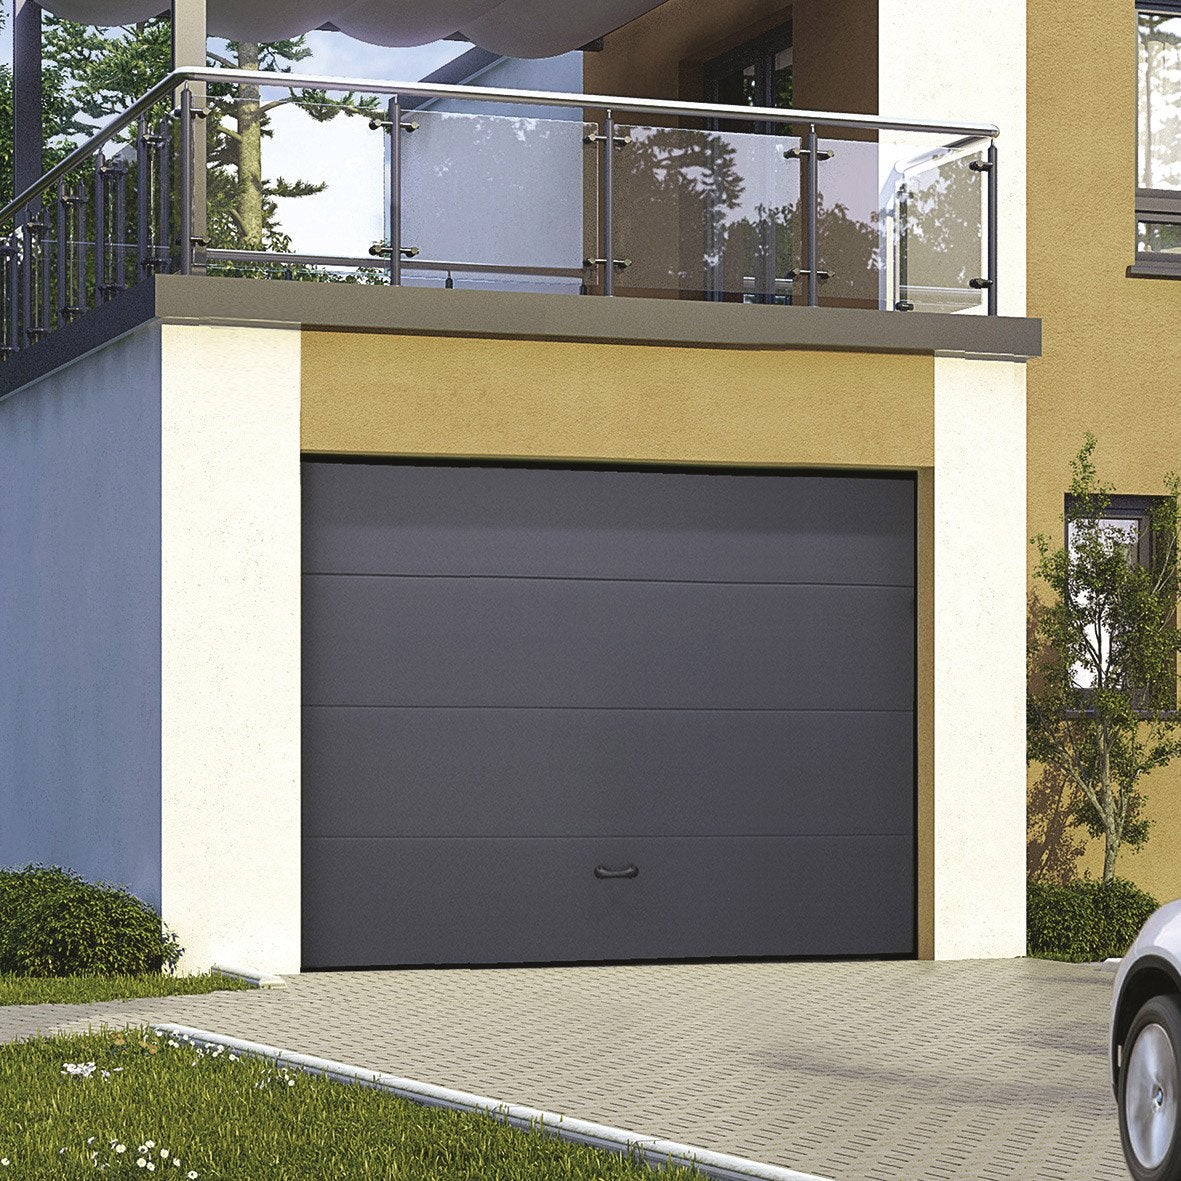 Porte de garage sectionnelle motoris e excellence rainures horizontales 2x3m - Leroy merlin porte de garage sectionnelle ...